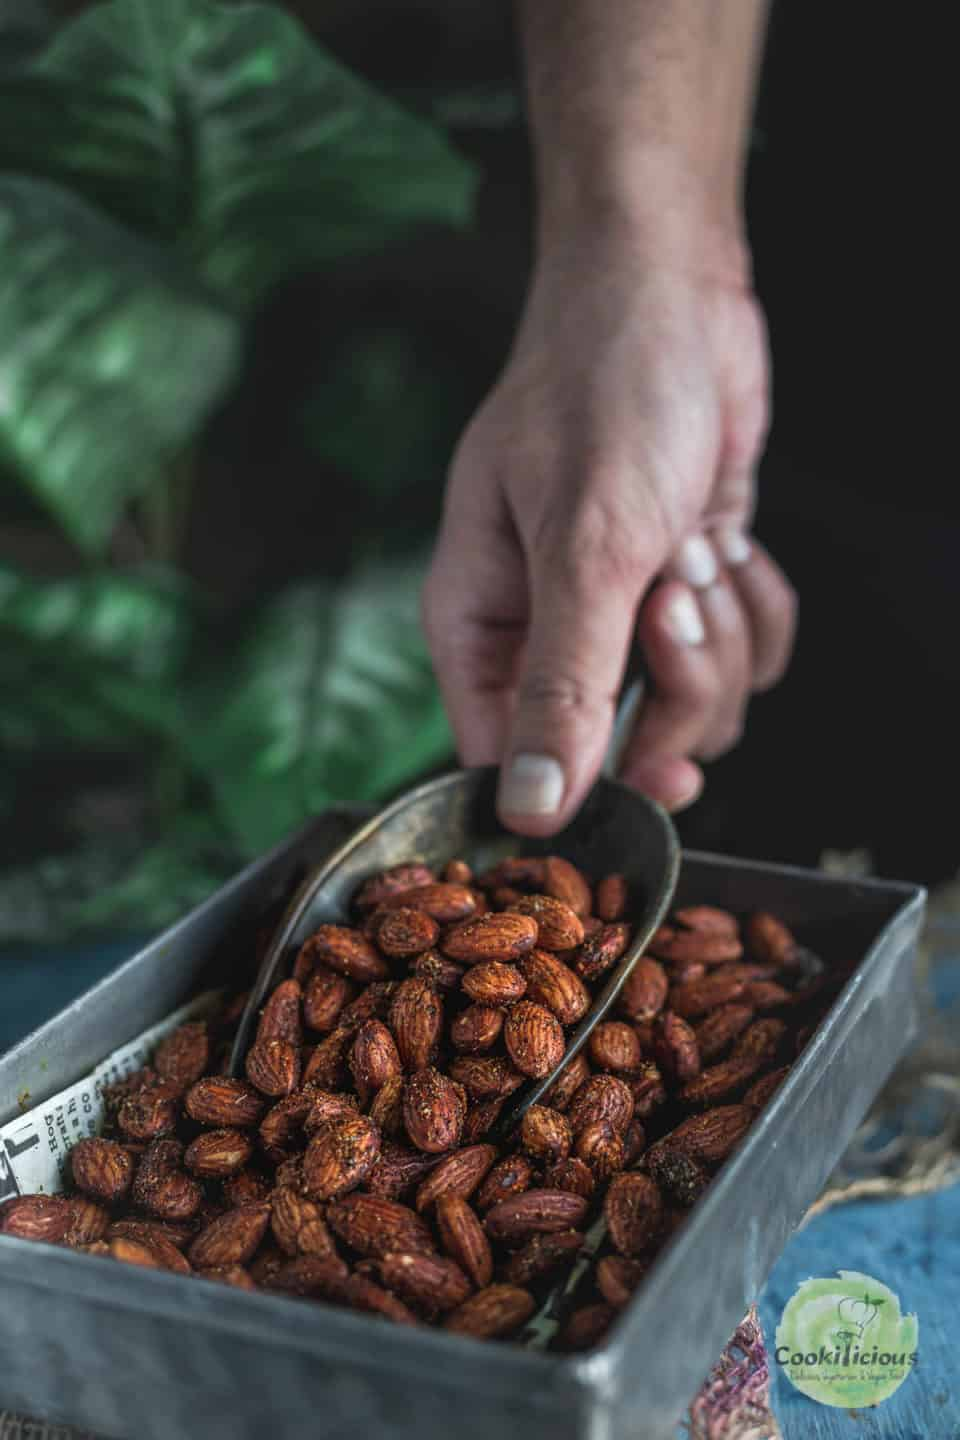 A hand using a scoop to get some Smoky Spicy Garlic Roasted Almonds from the platter